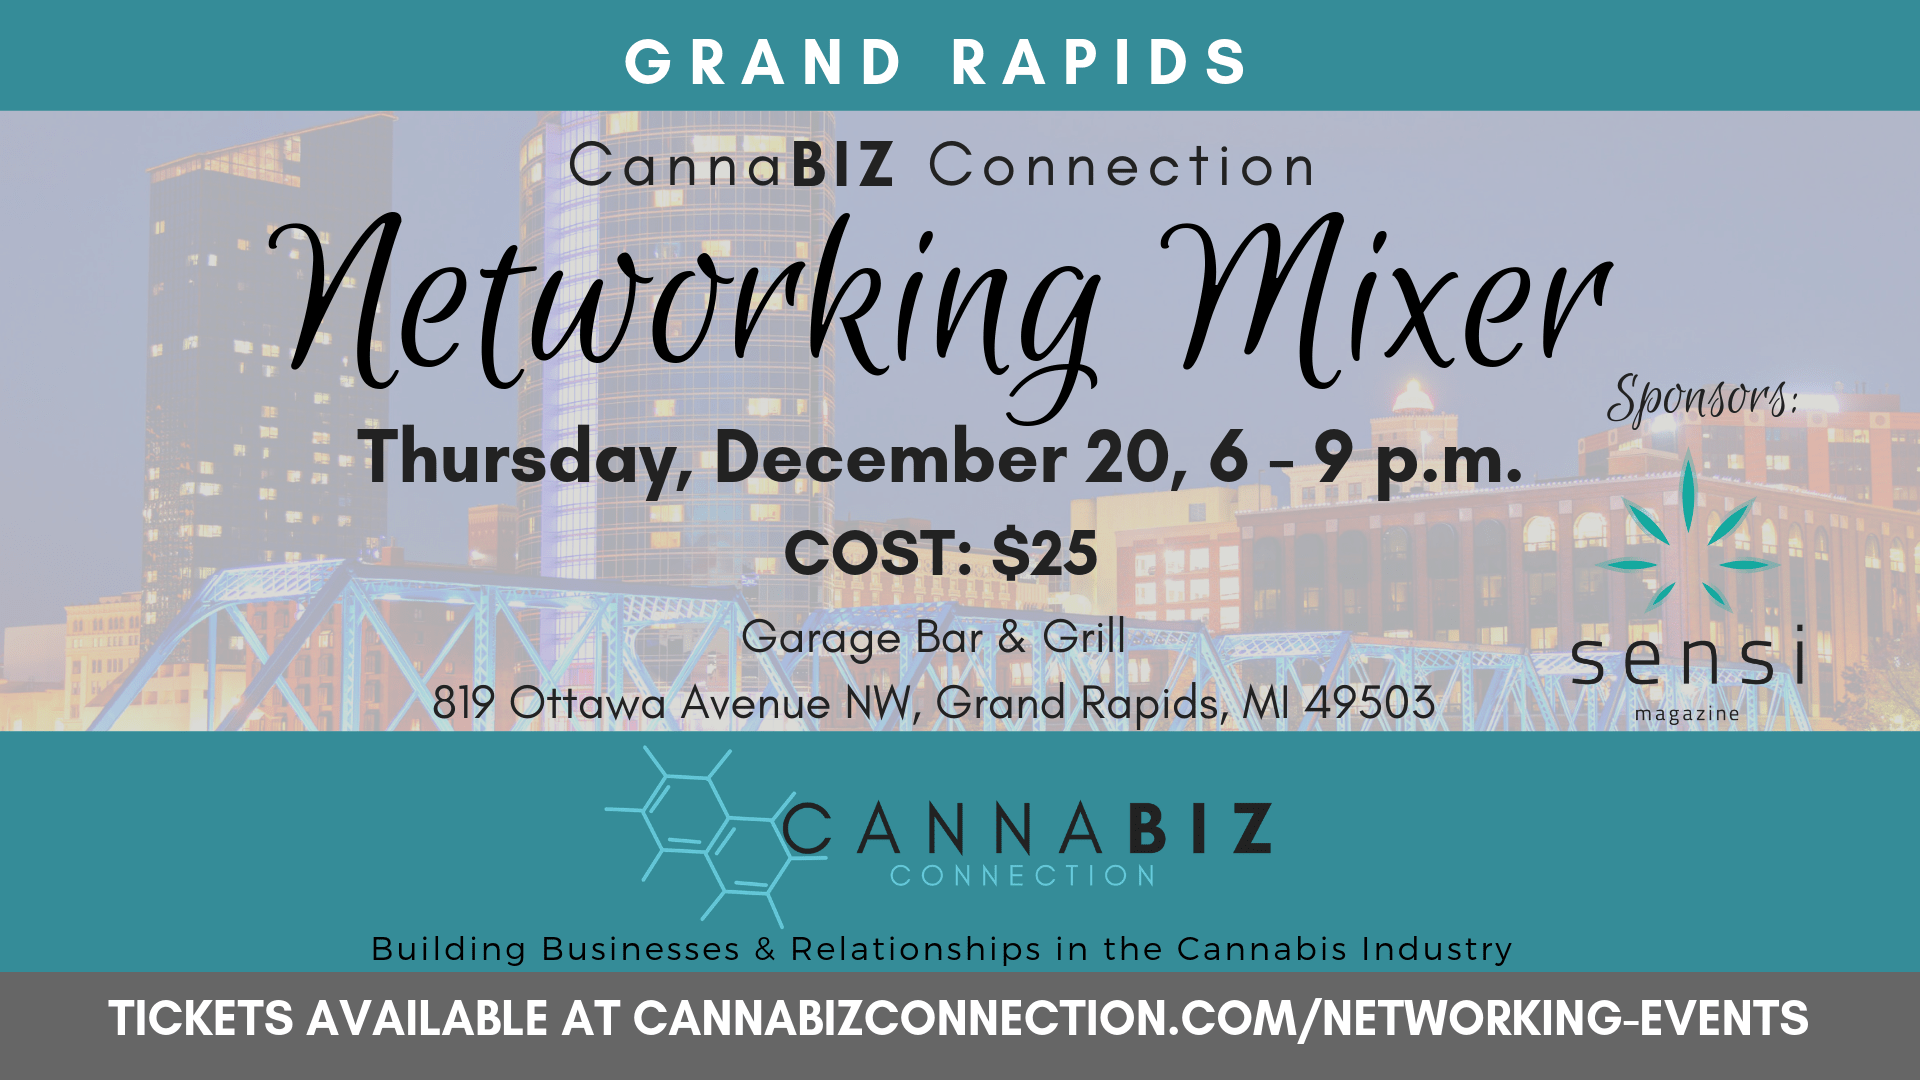 Grand Rapids Cannabiz Connection Monthly Networking Mixer